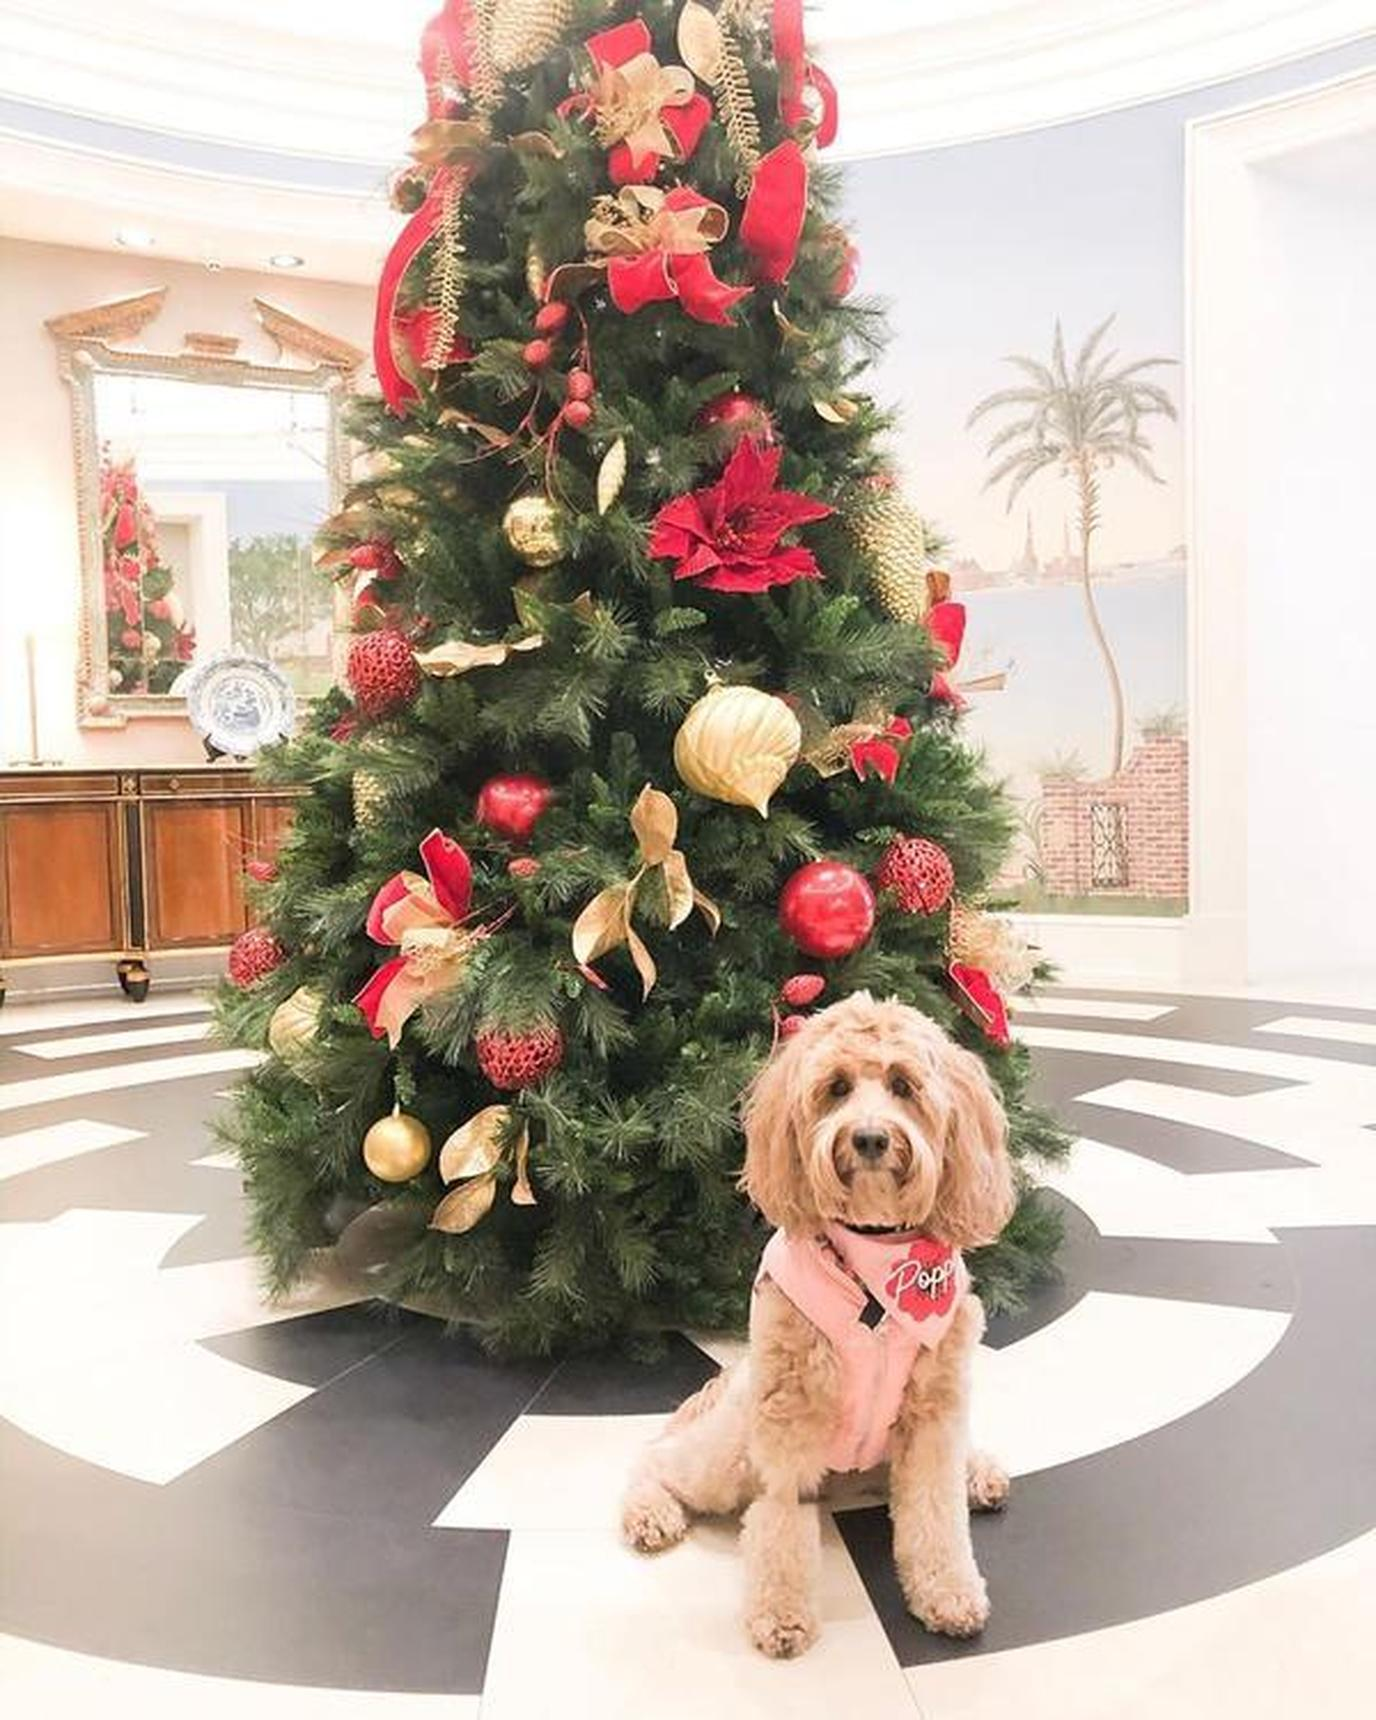 A dog and a christmas tree